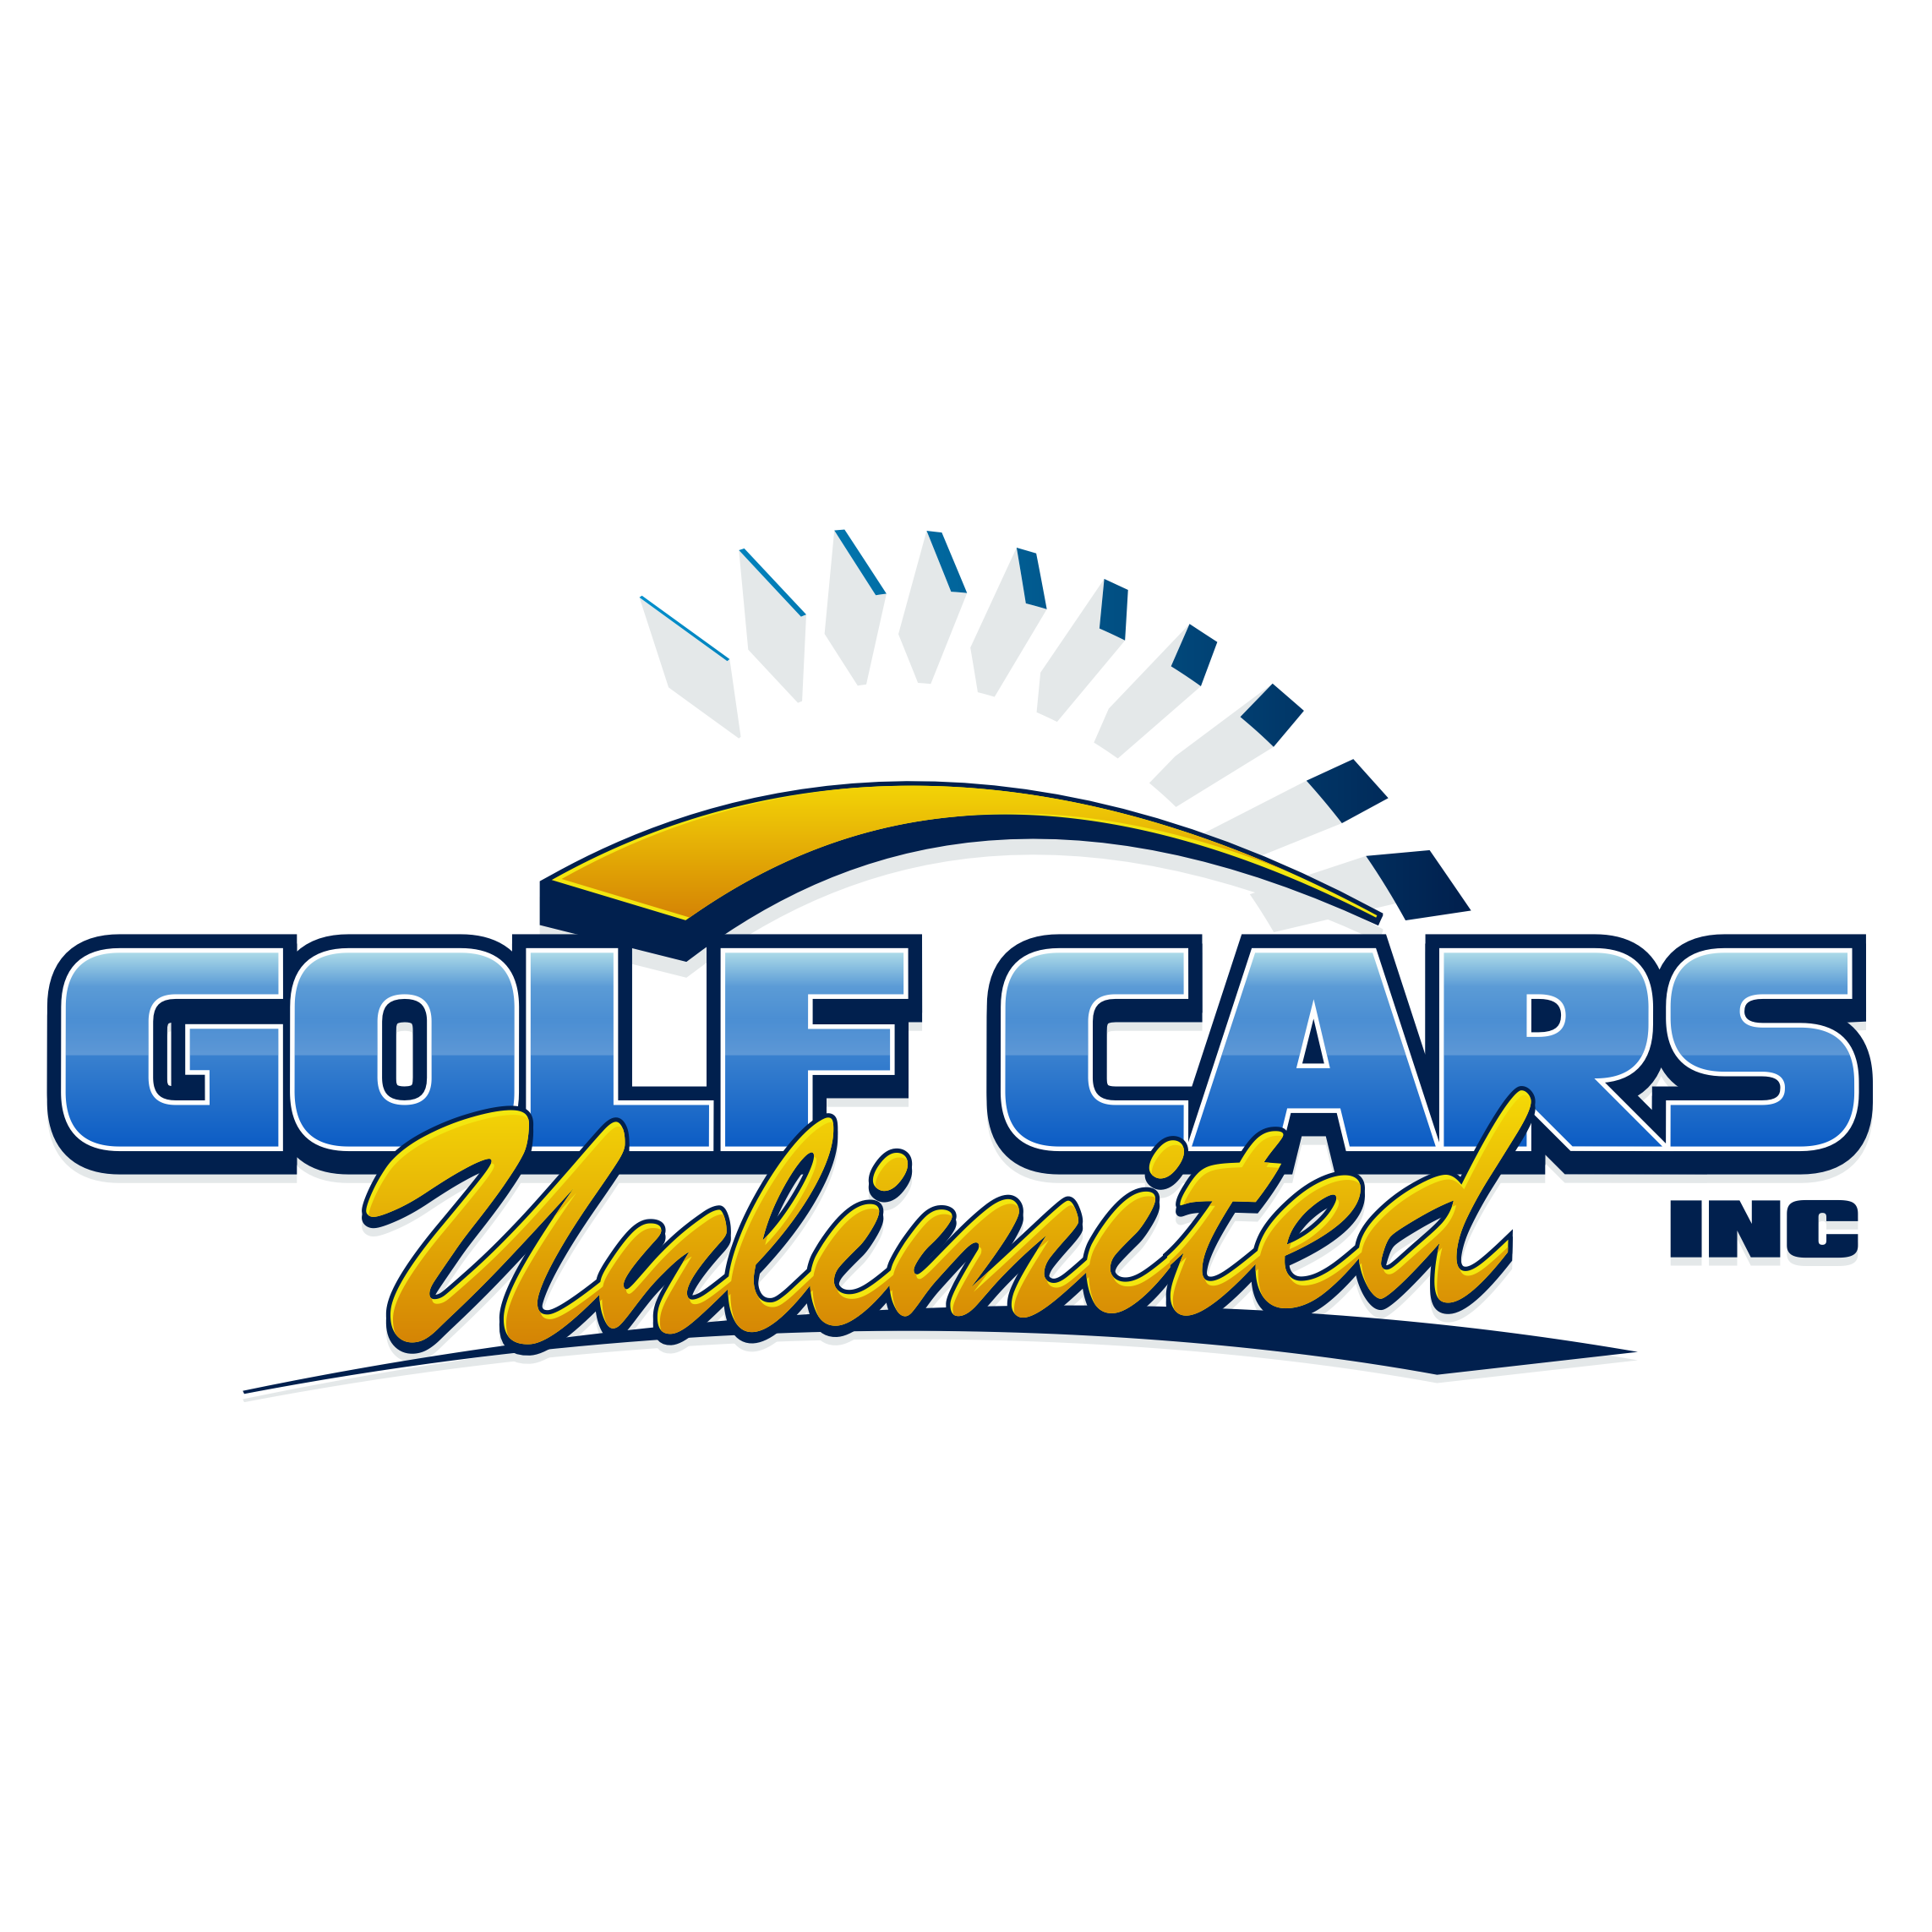 Golf Cars Unlimited In Walden Ny Whitepages